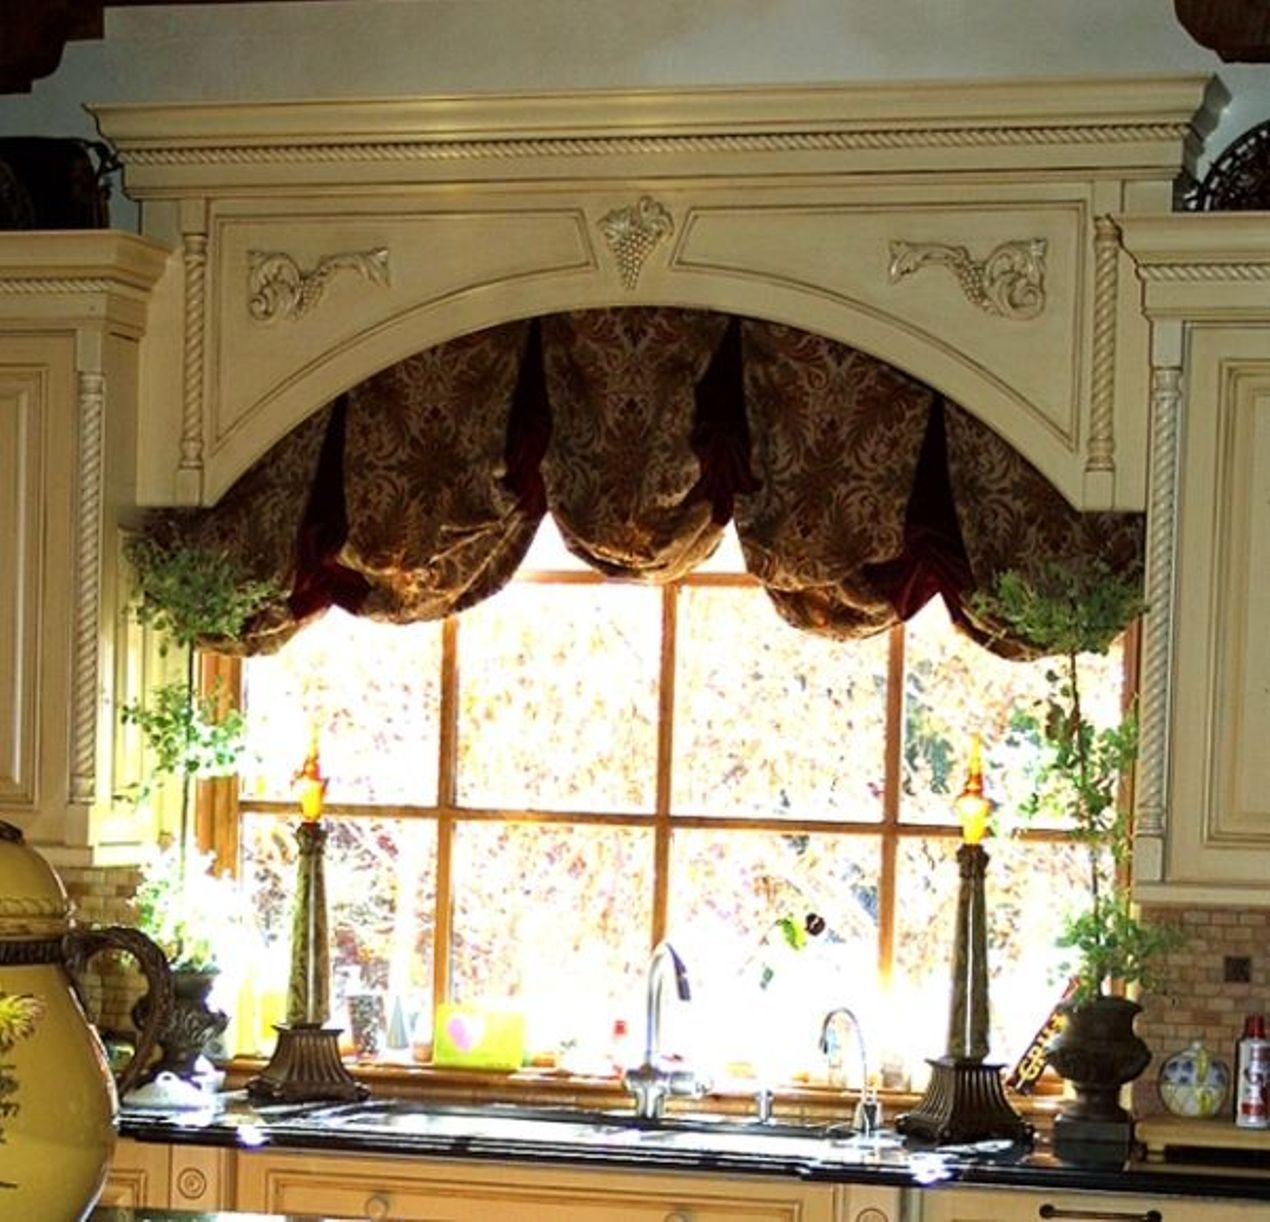 Elegant Kitchen Curtains Valances: Elegant Kitchen Window Decorated With Large Cornice And